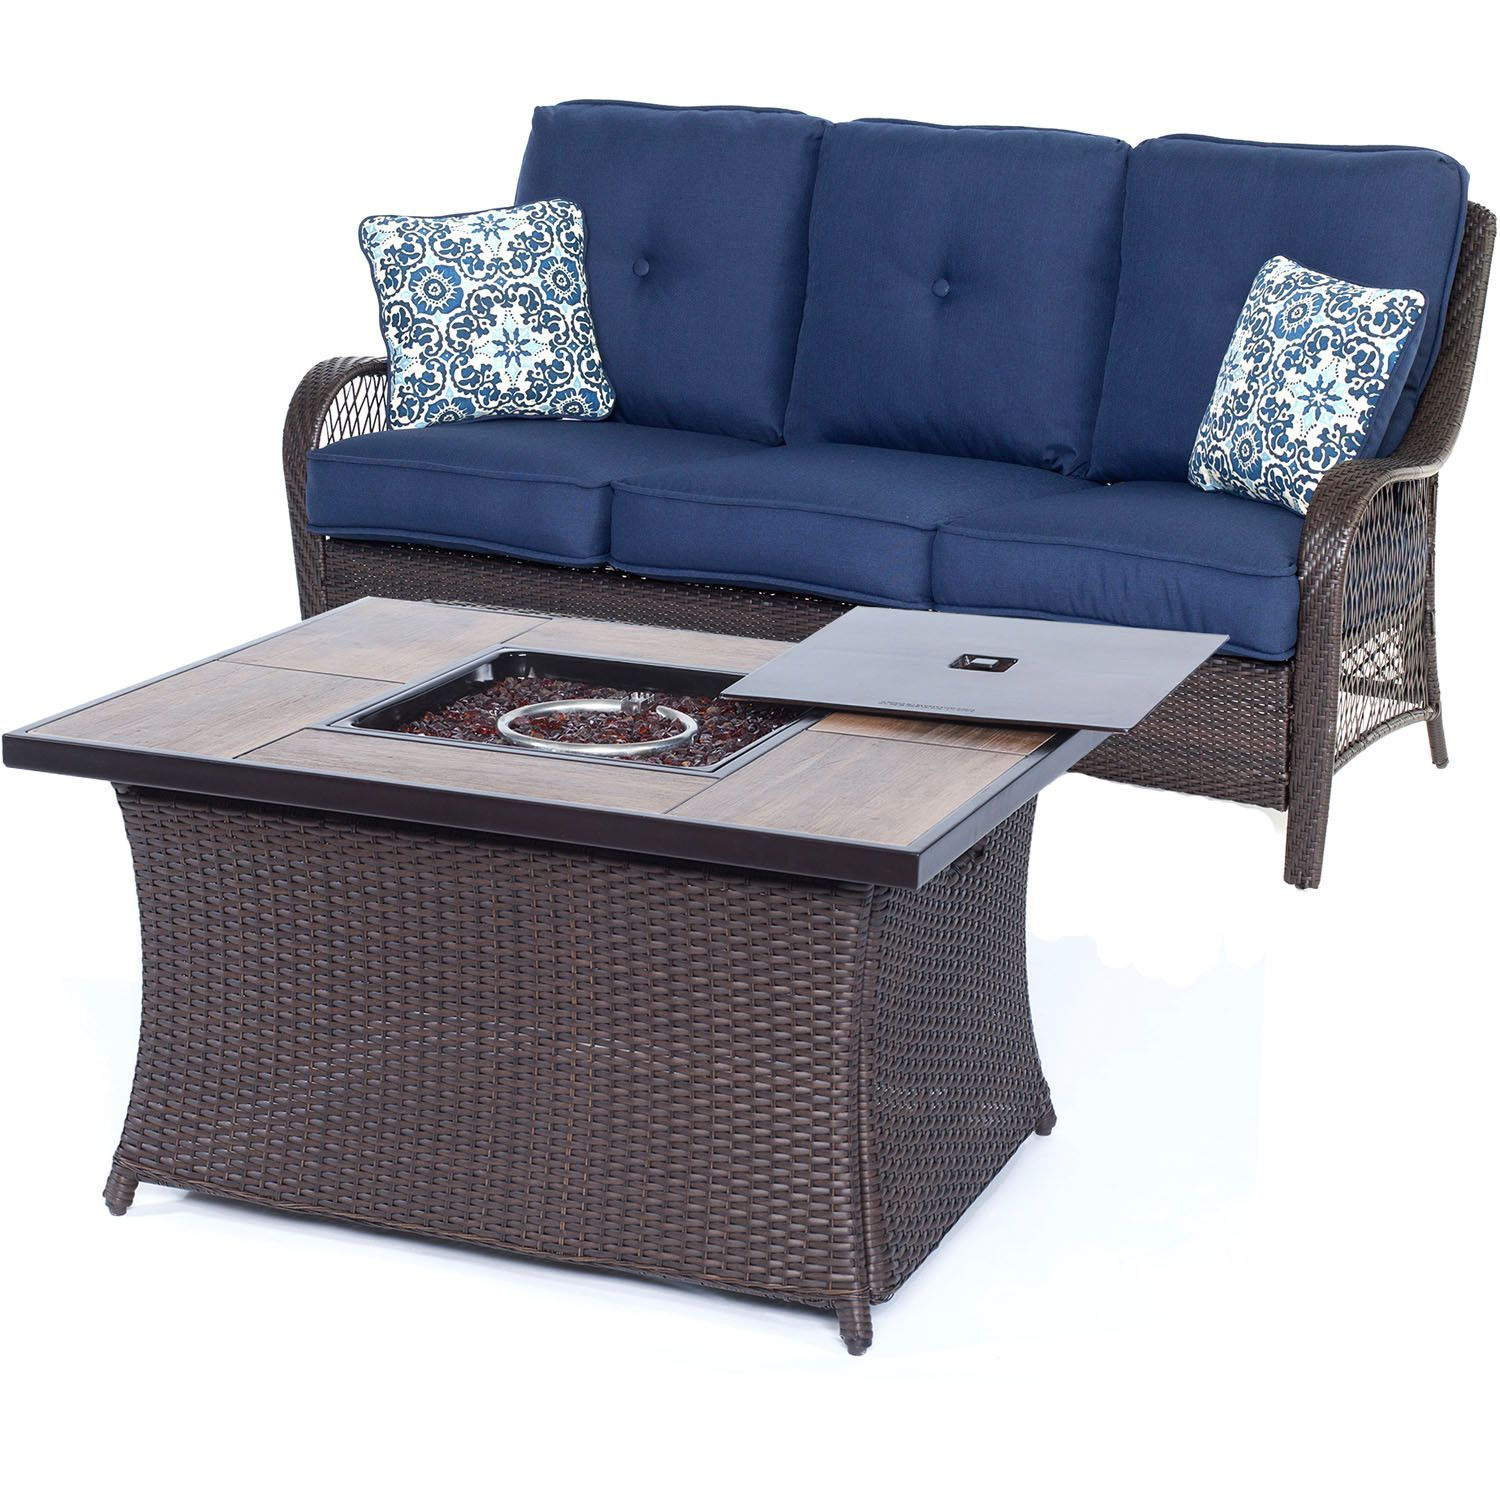 Orleans2pc FP Seating Set Sofa Fire Pit Coffee Table w Wood